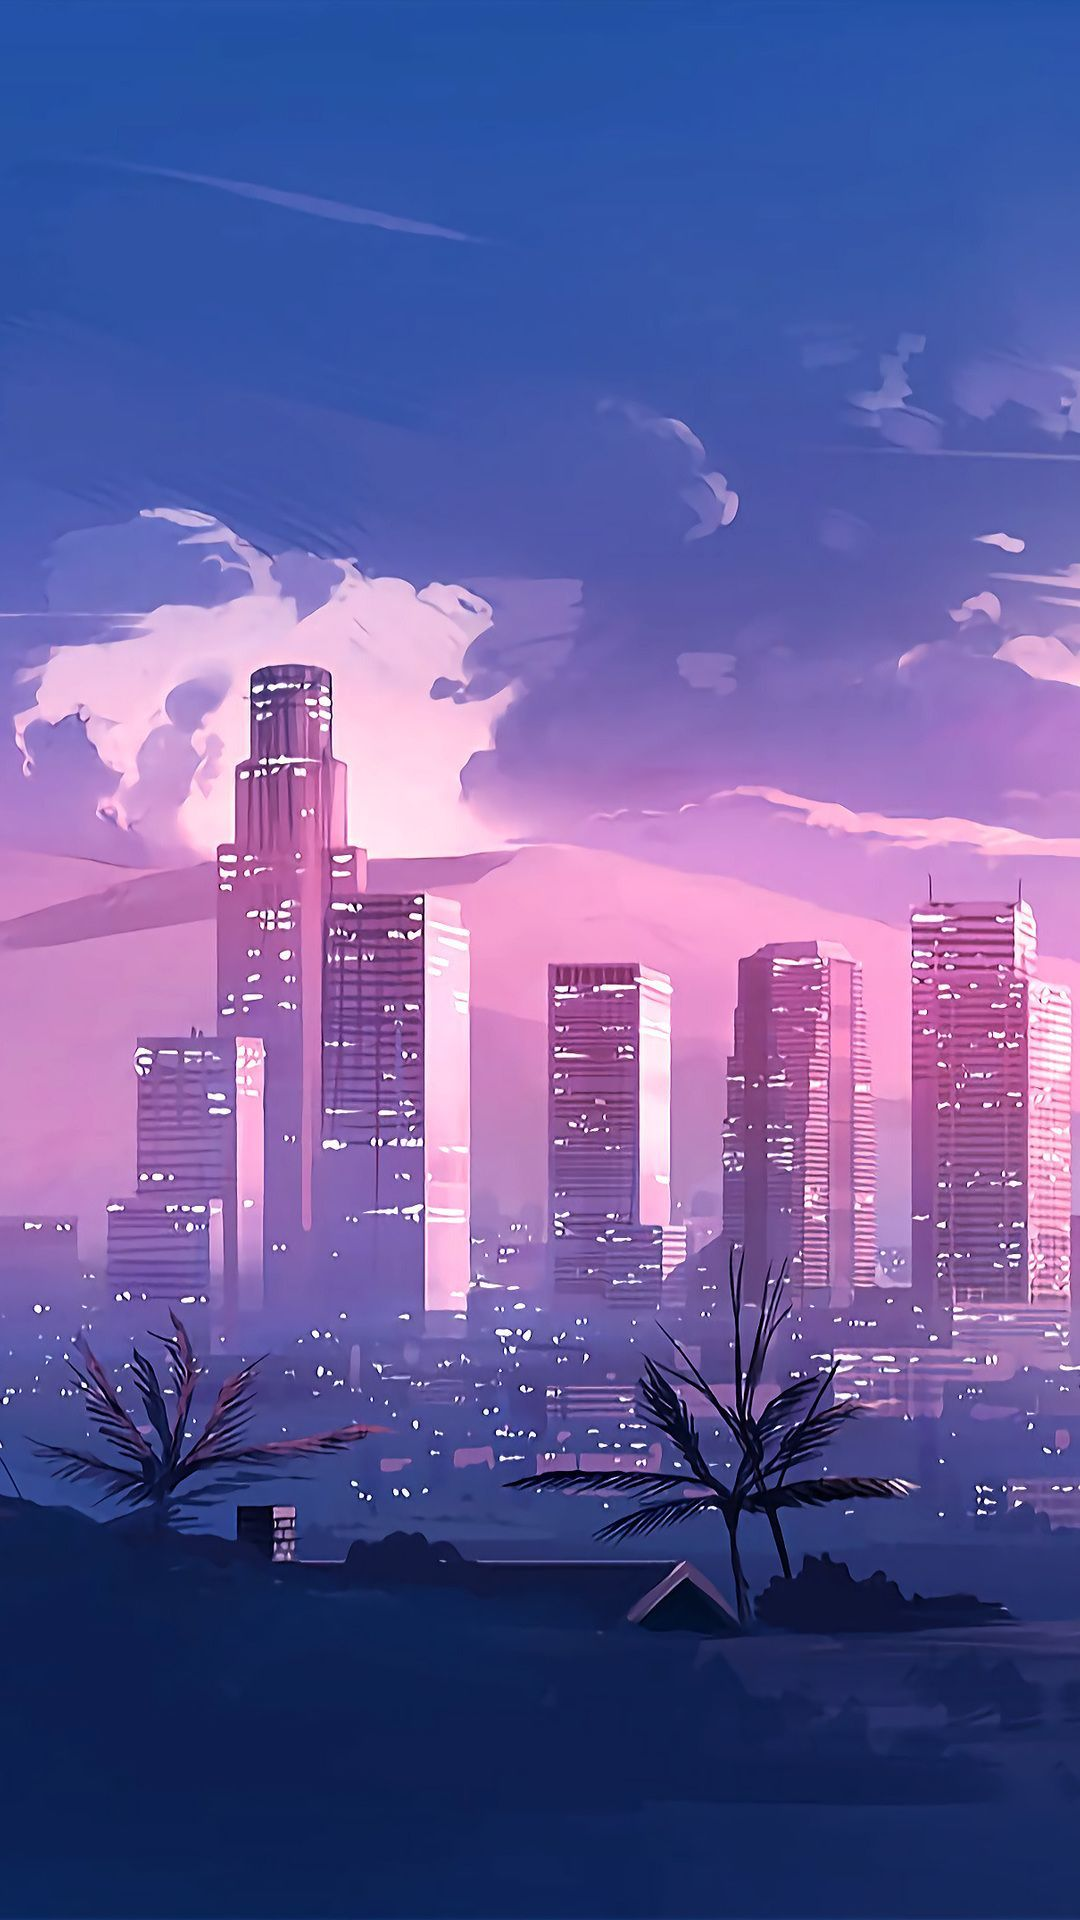 Blue City Anime Aesthetic Wallpapers Wallpaper Cave